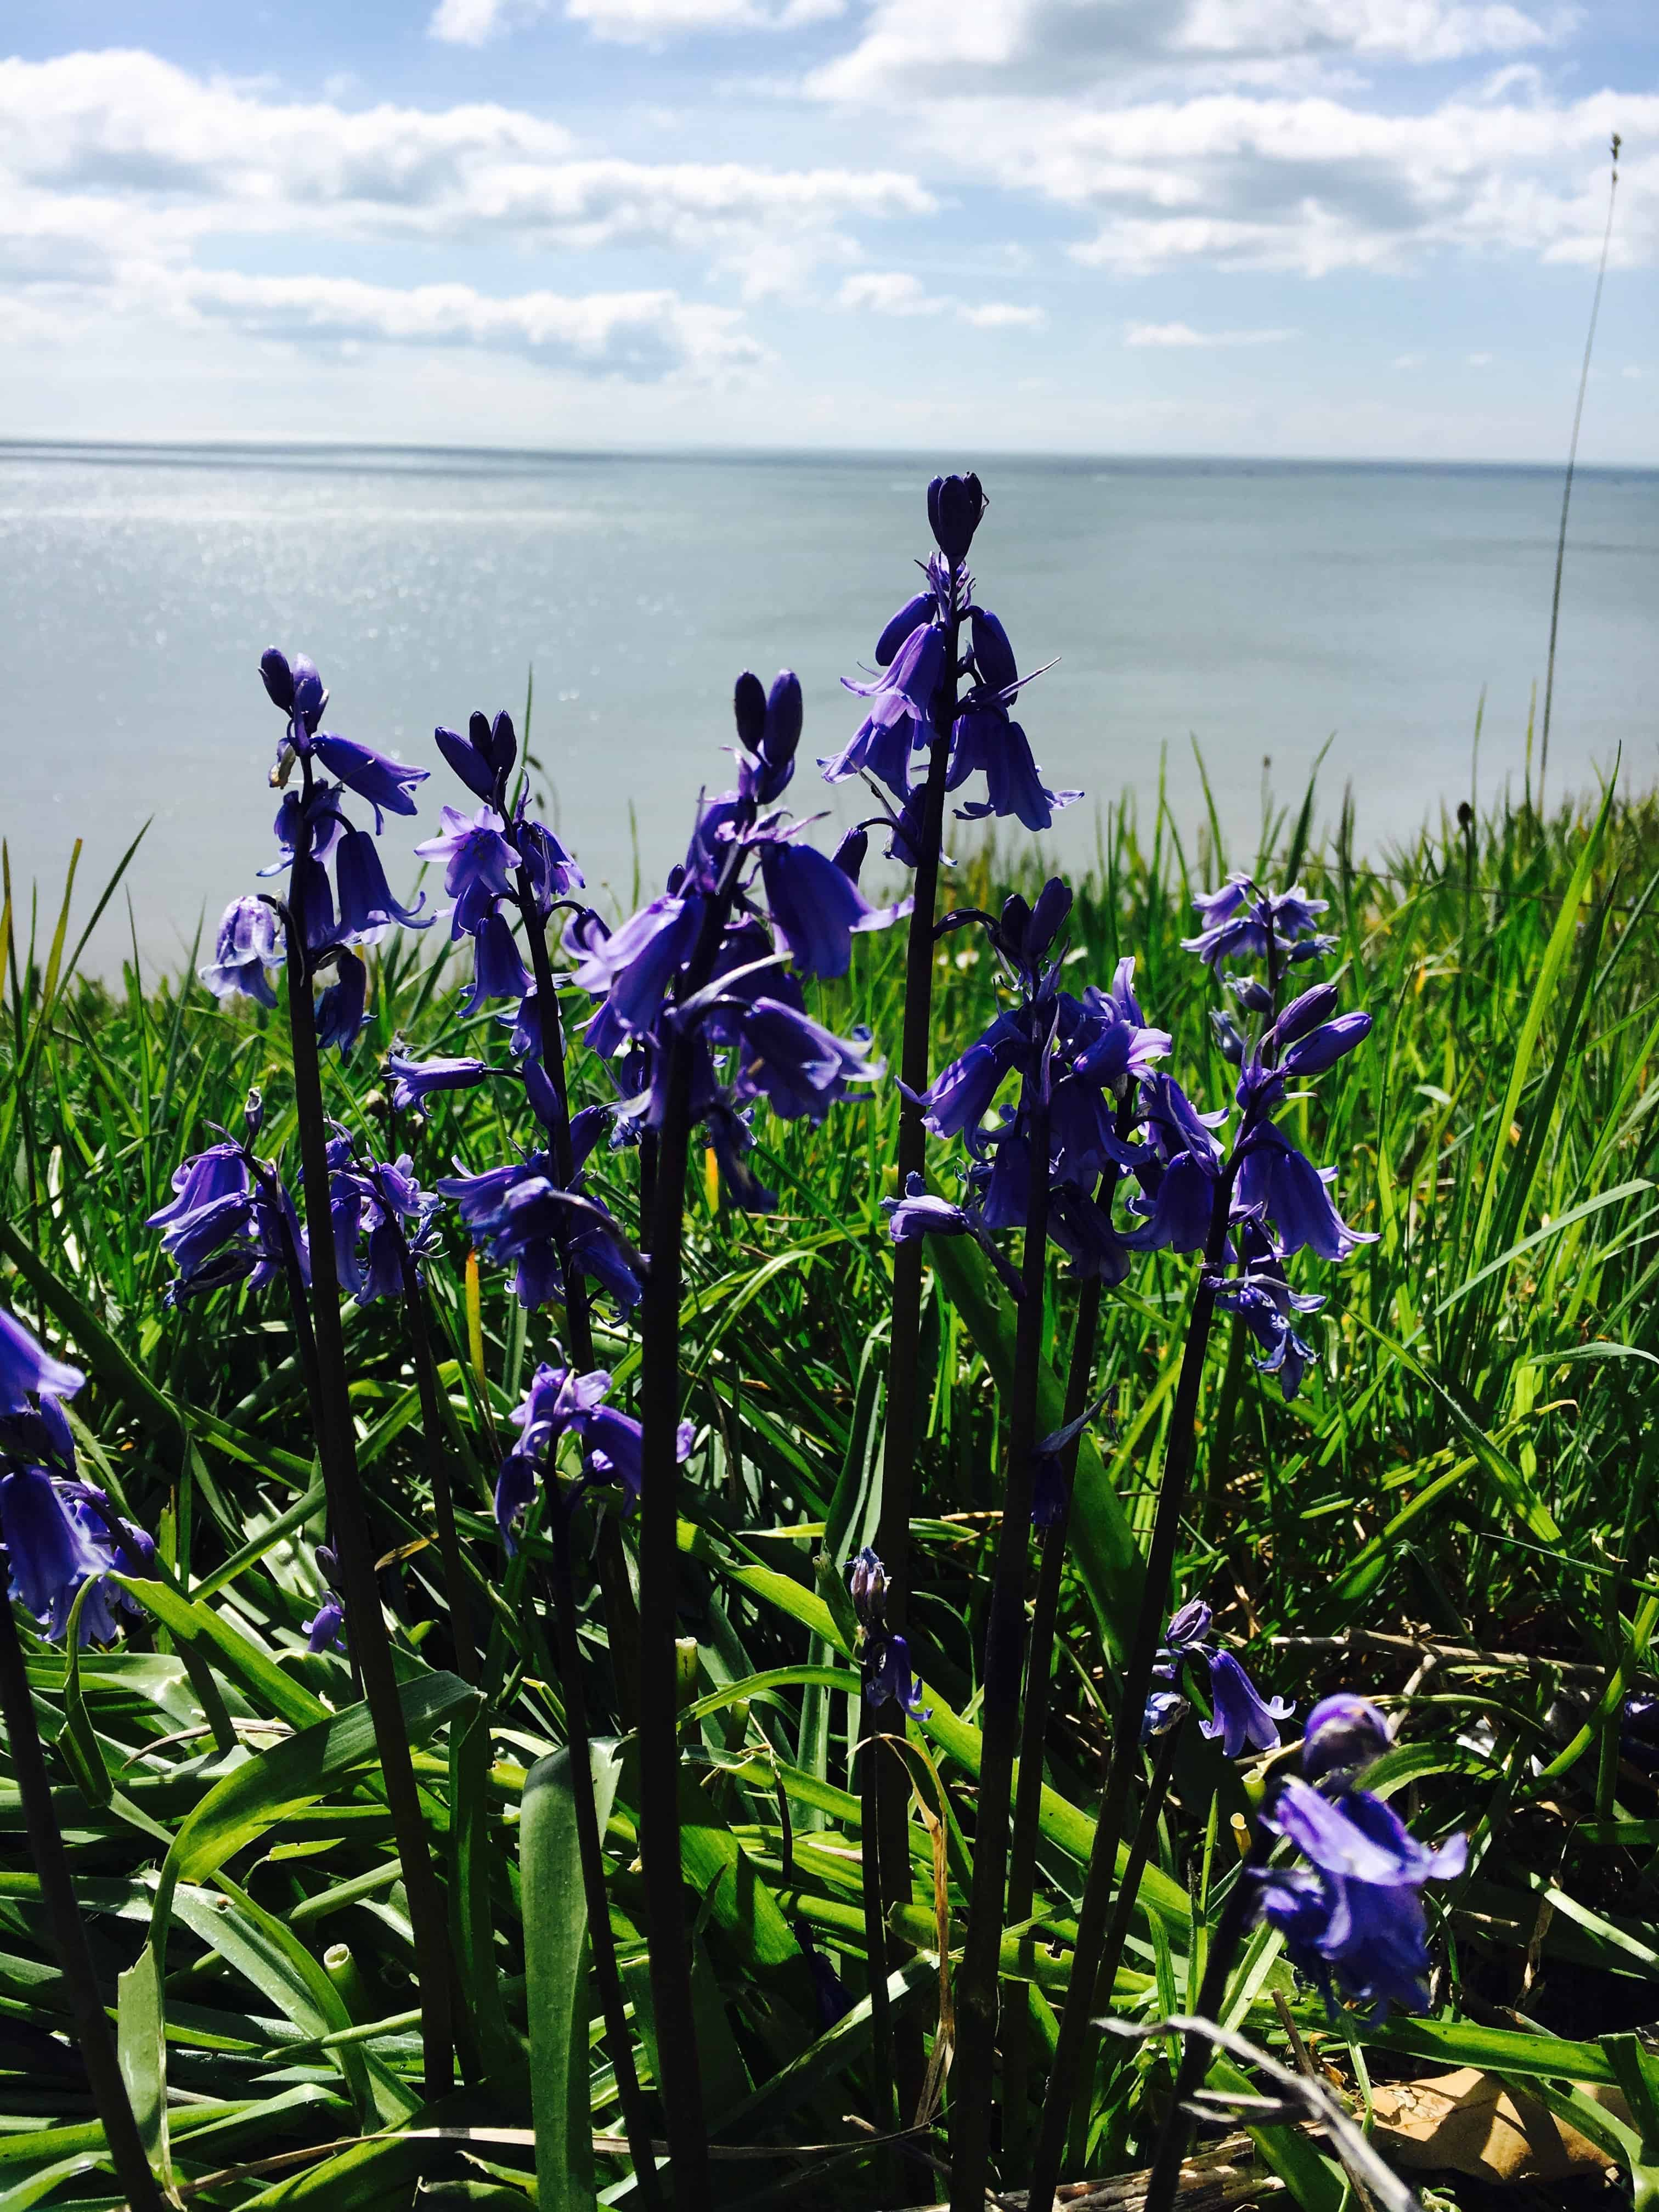 Bluebells by the Sea